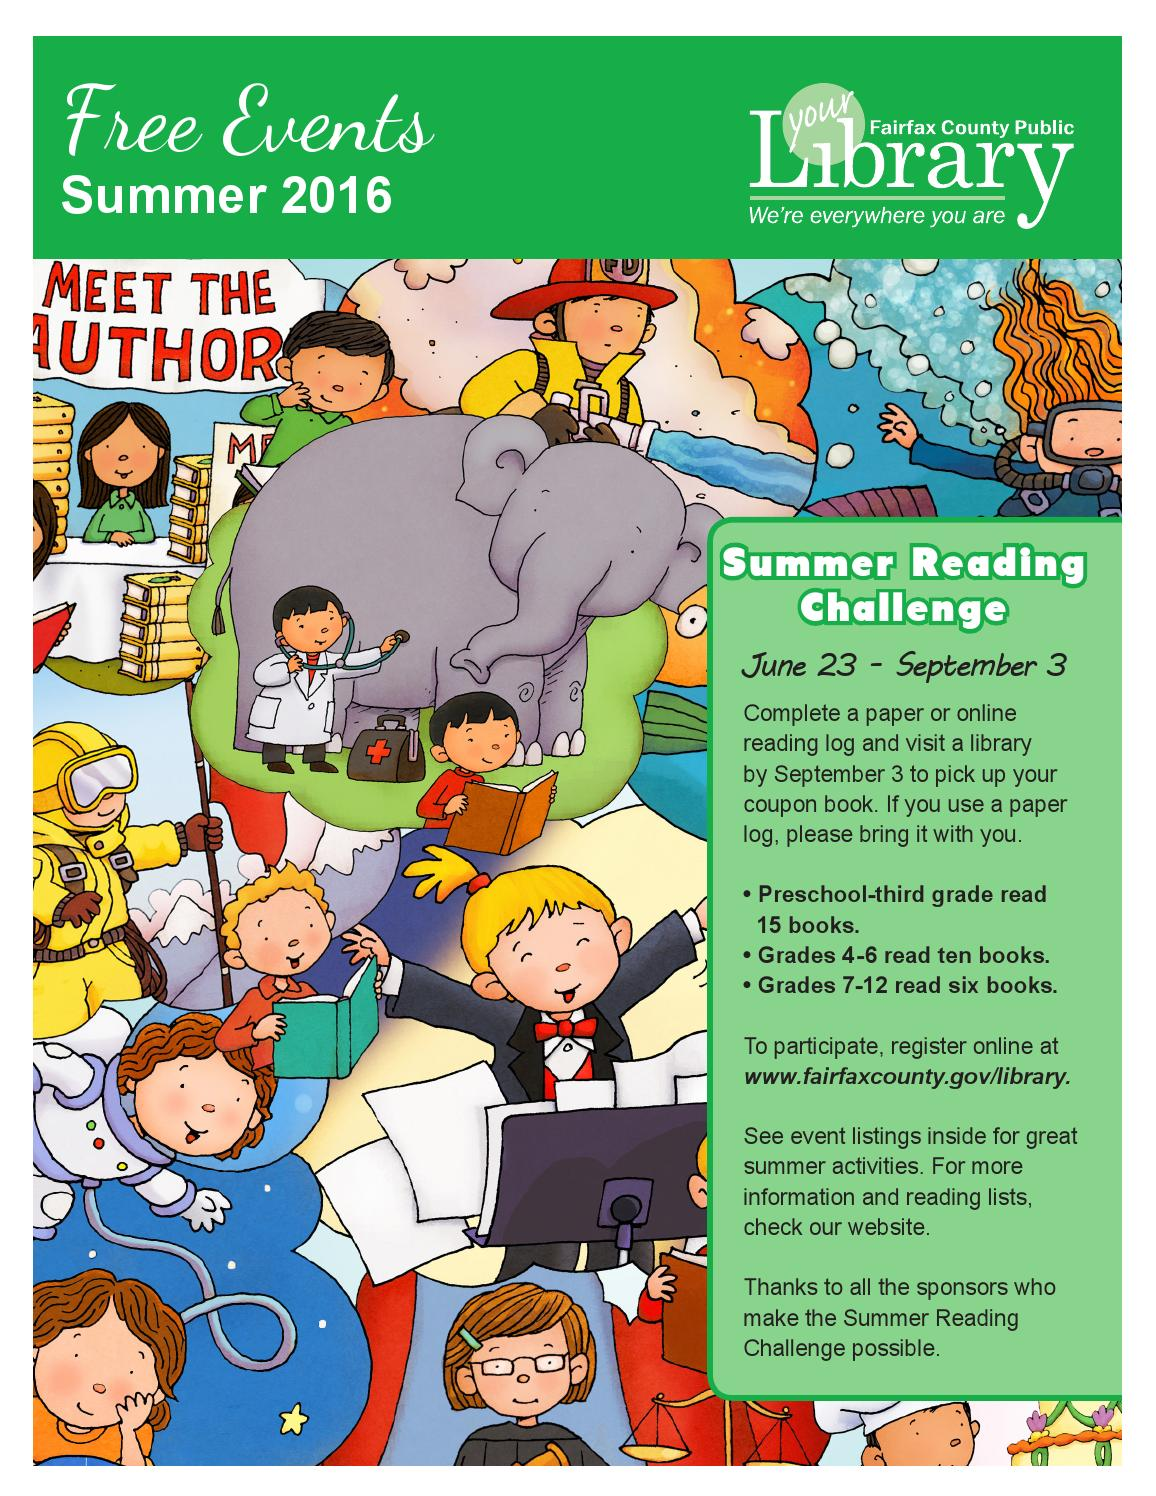 2016 Summer Free Events Calendar by Fairfax County Public Library ...